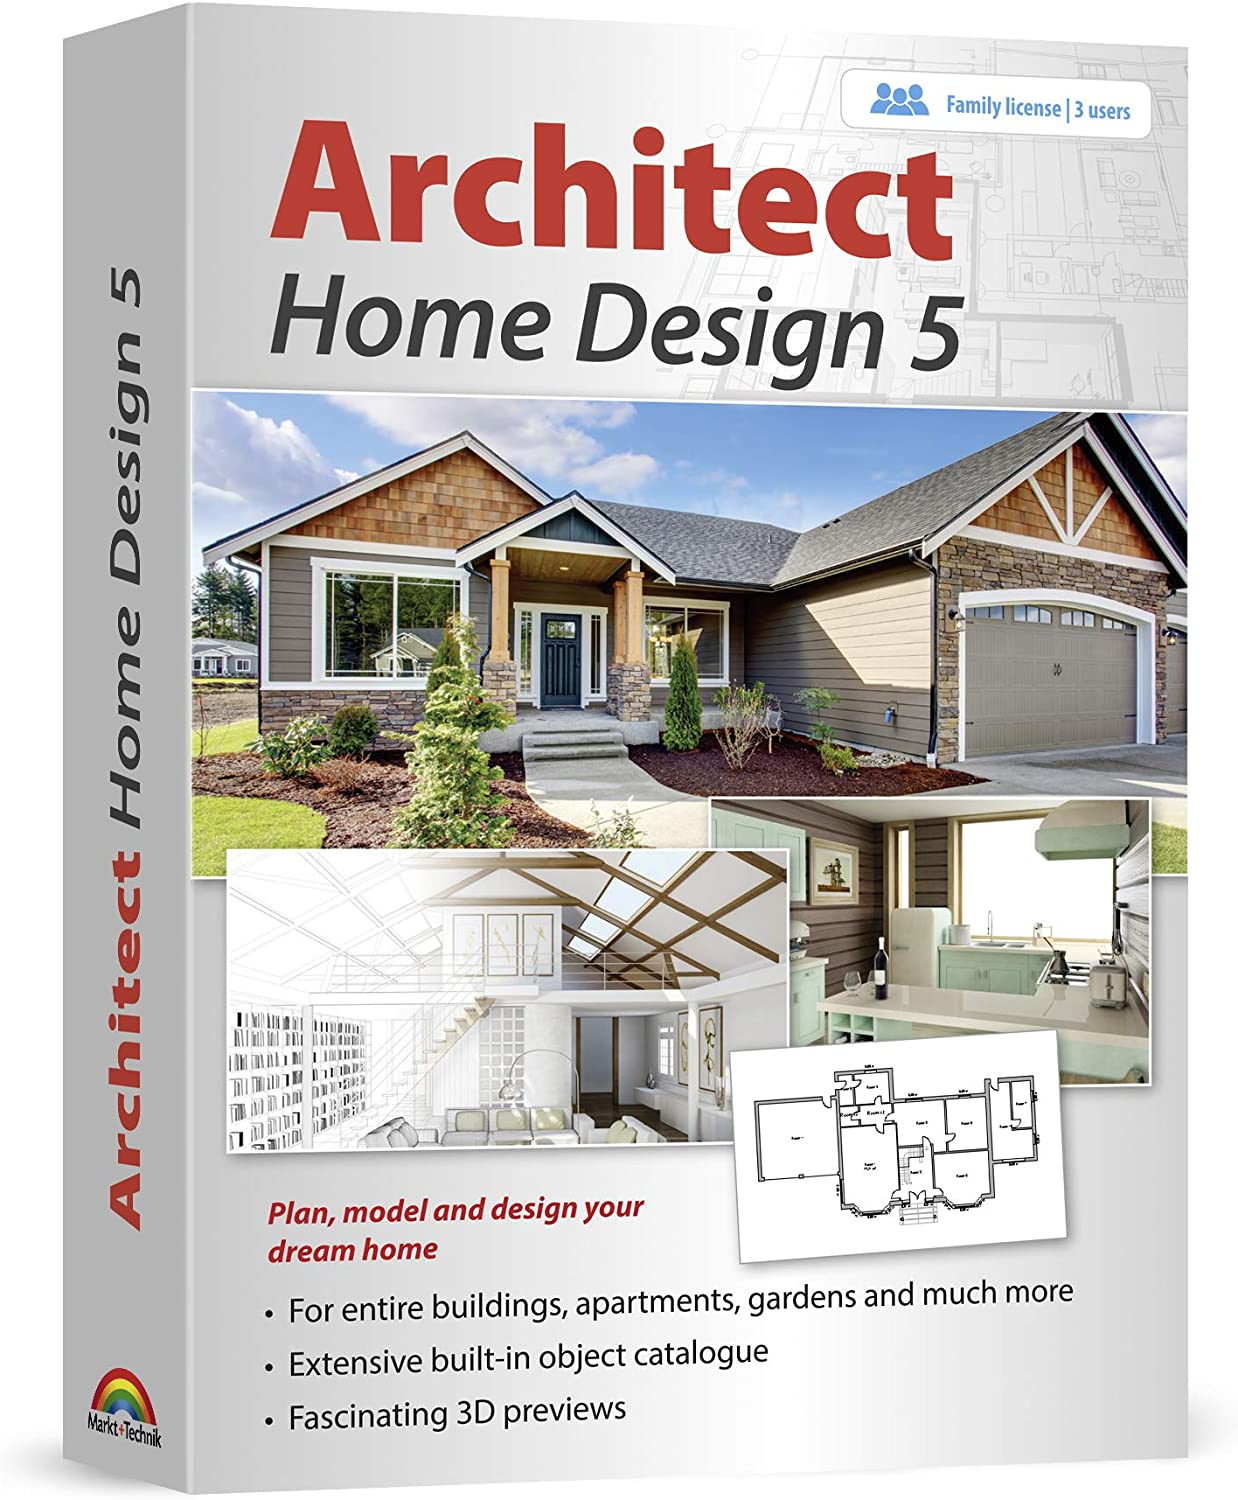 Architect Home Design 5 - Plan, model and design your dream home and landscape for Windows 10, 8.1, 7 81Kd93UbT7L